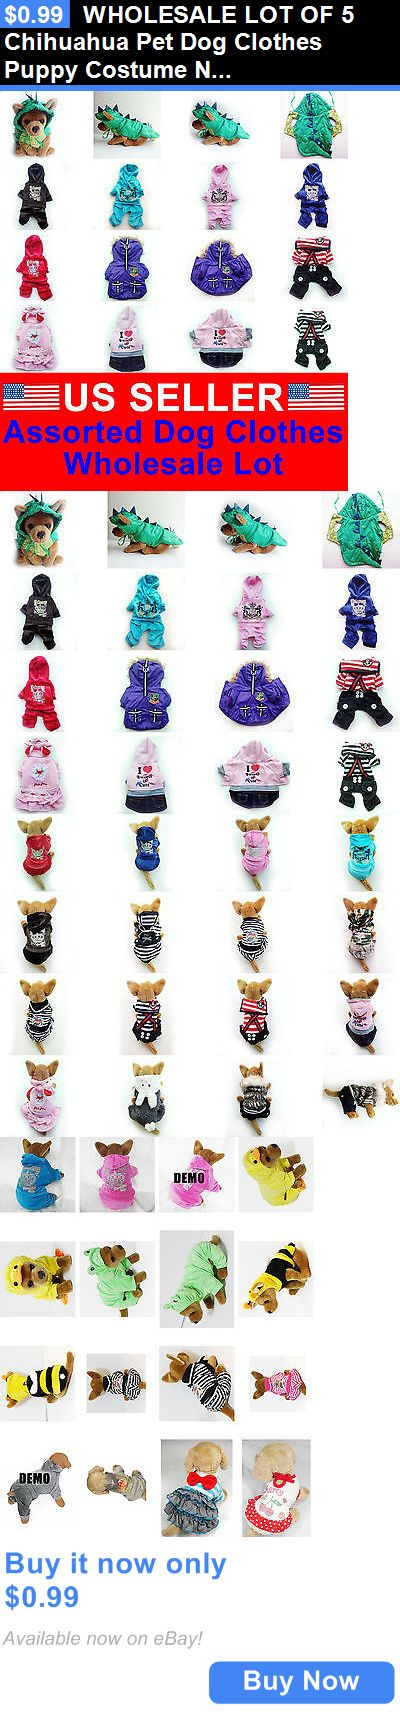 Cute Animals And Animals Stuff: Wholesale Lot Of 5 Chihuahua Pet Dog Clothes Puppy Costume New Apparel Girl L BUY IT NOW ONLY: $0.99